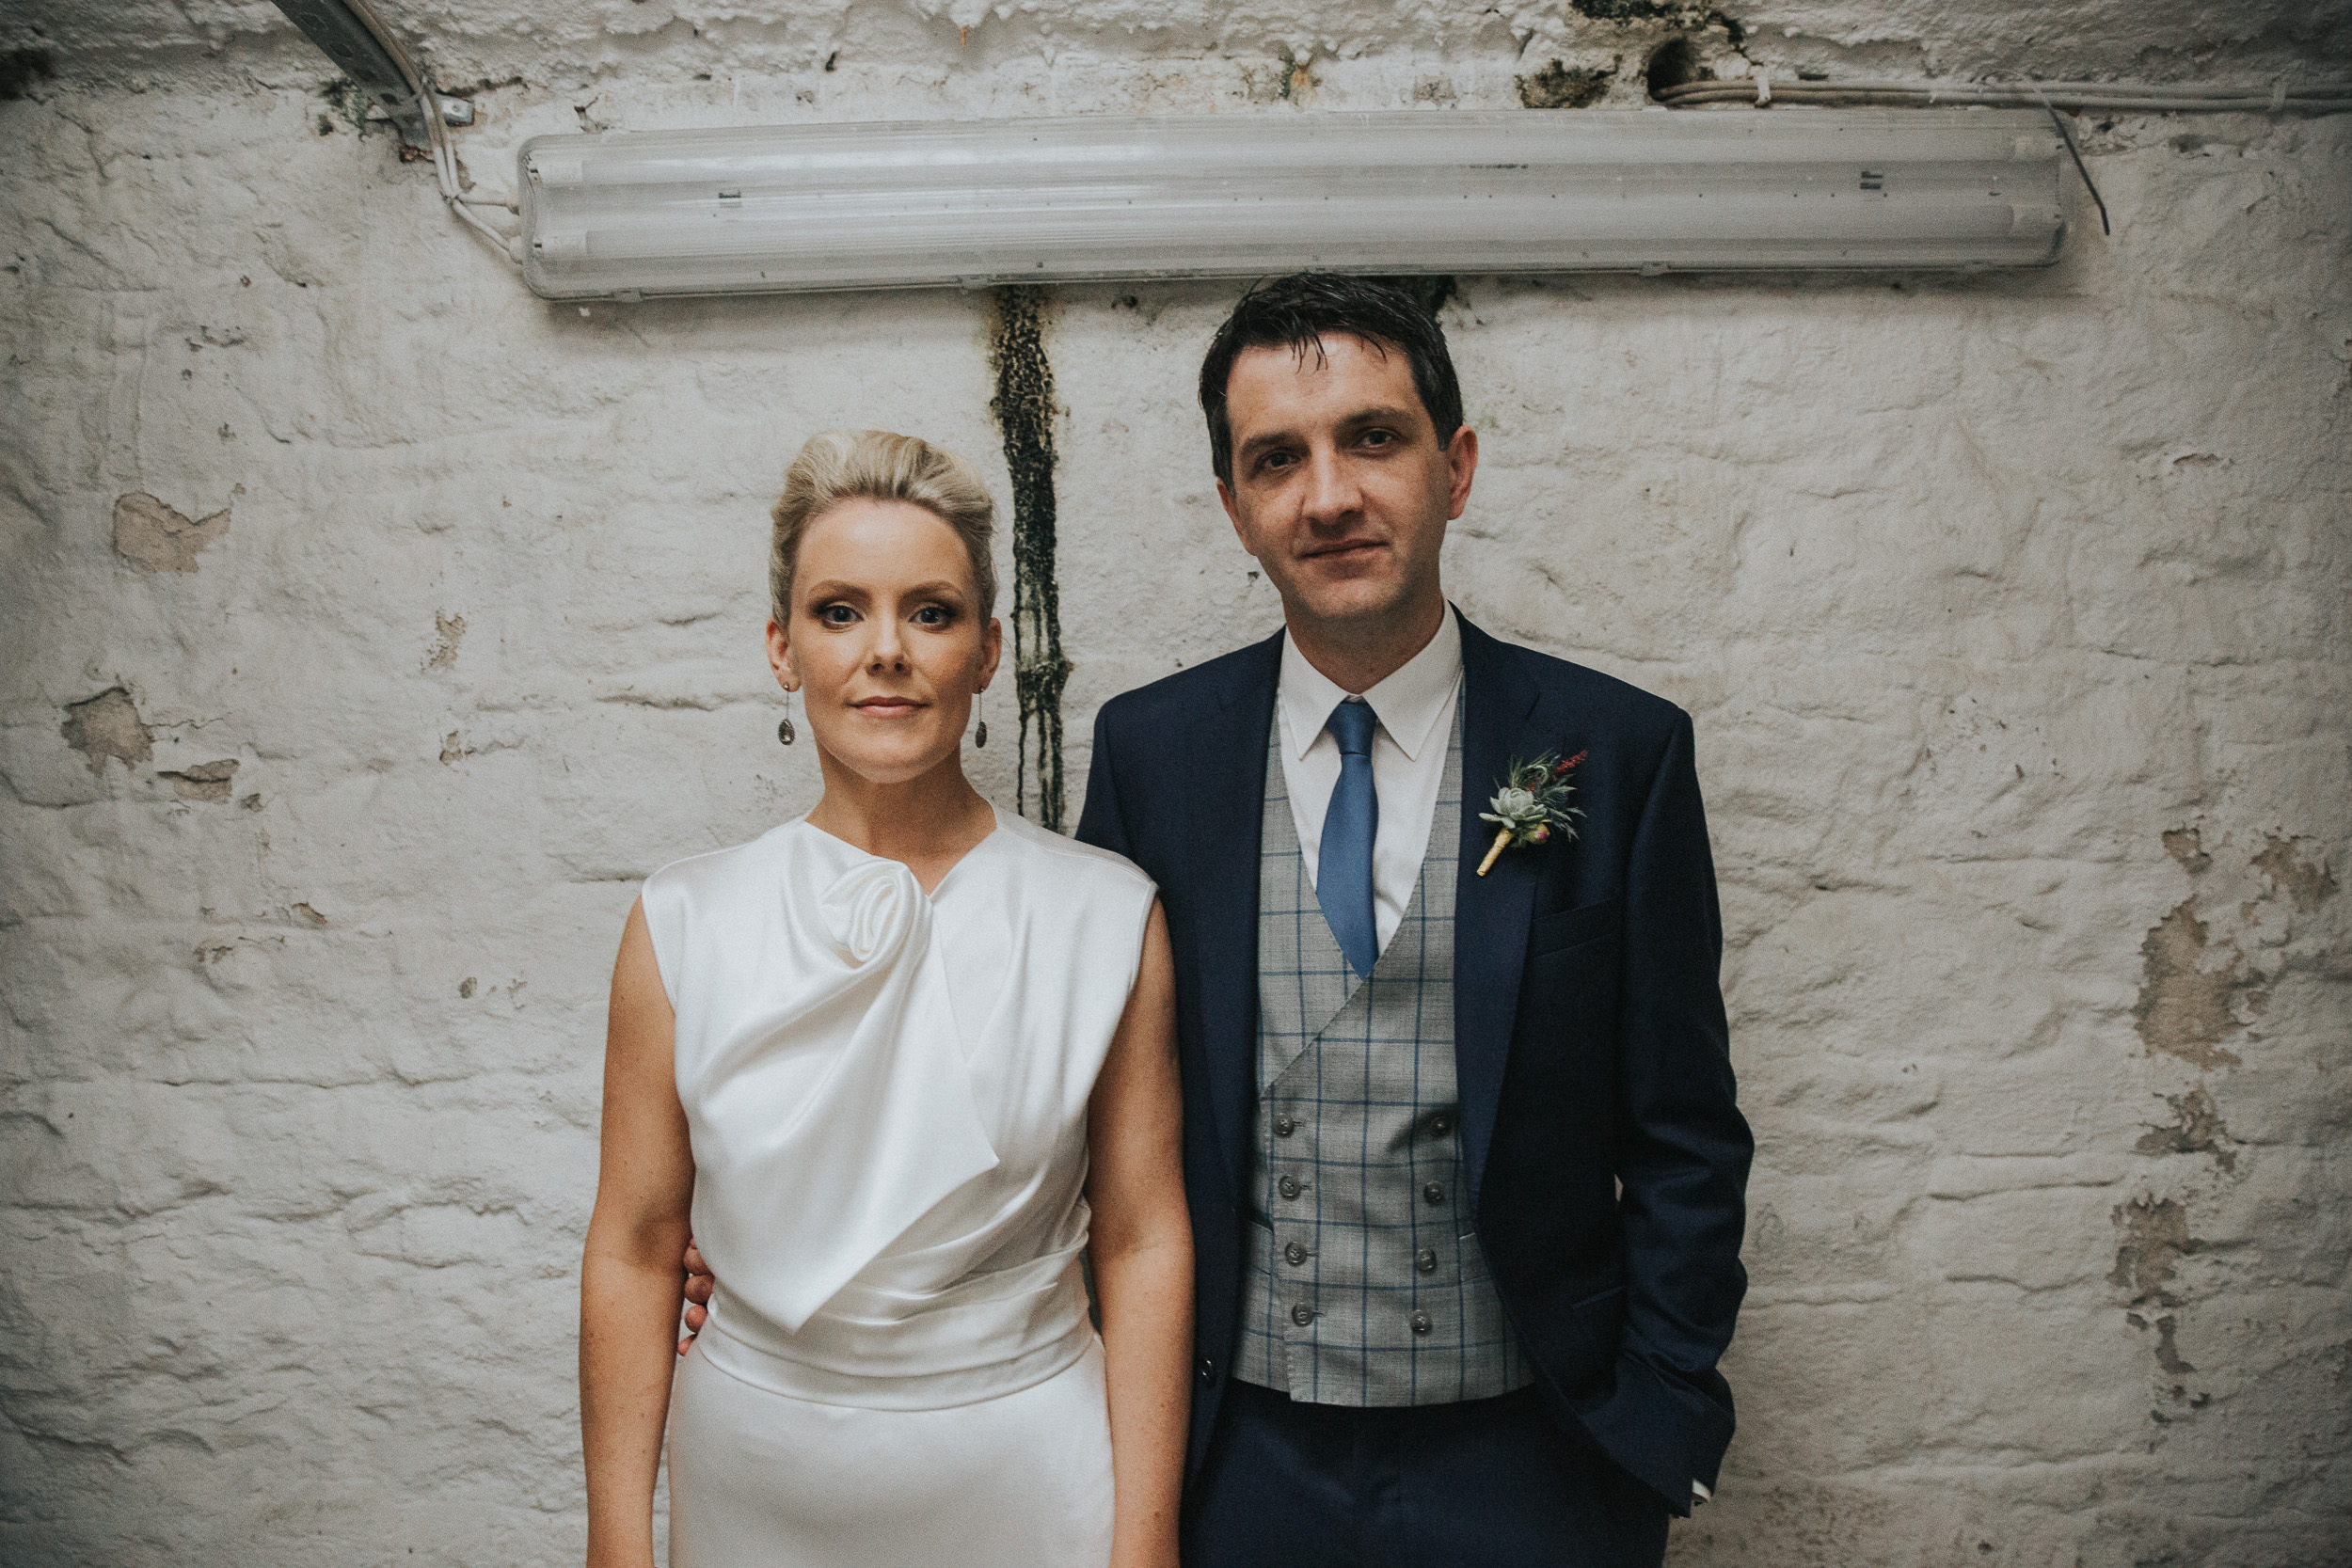 clairebyrnephotography-fun-wedding-photographer-ireland-creative-57.jpg